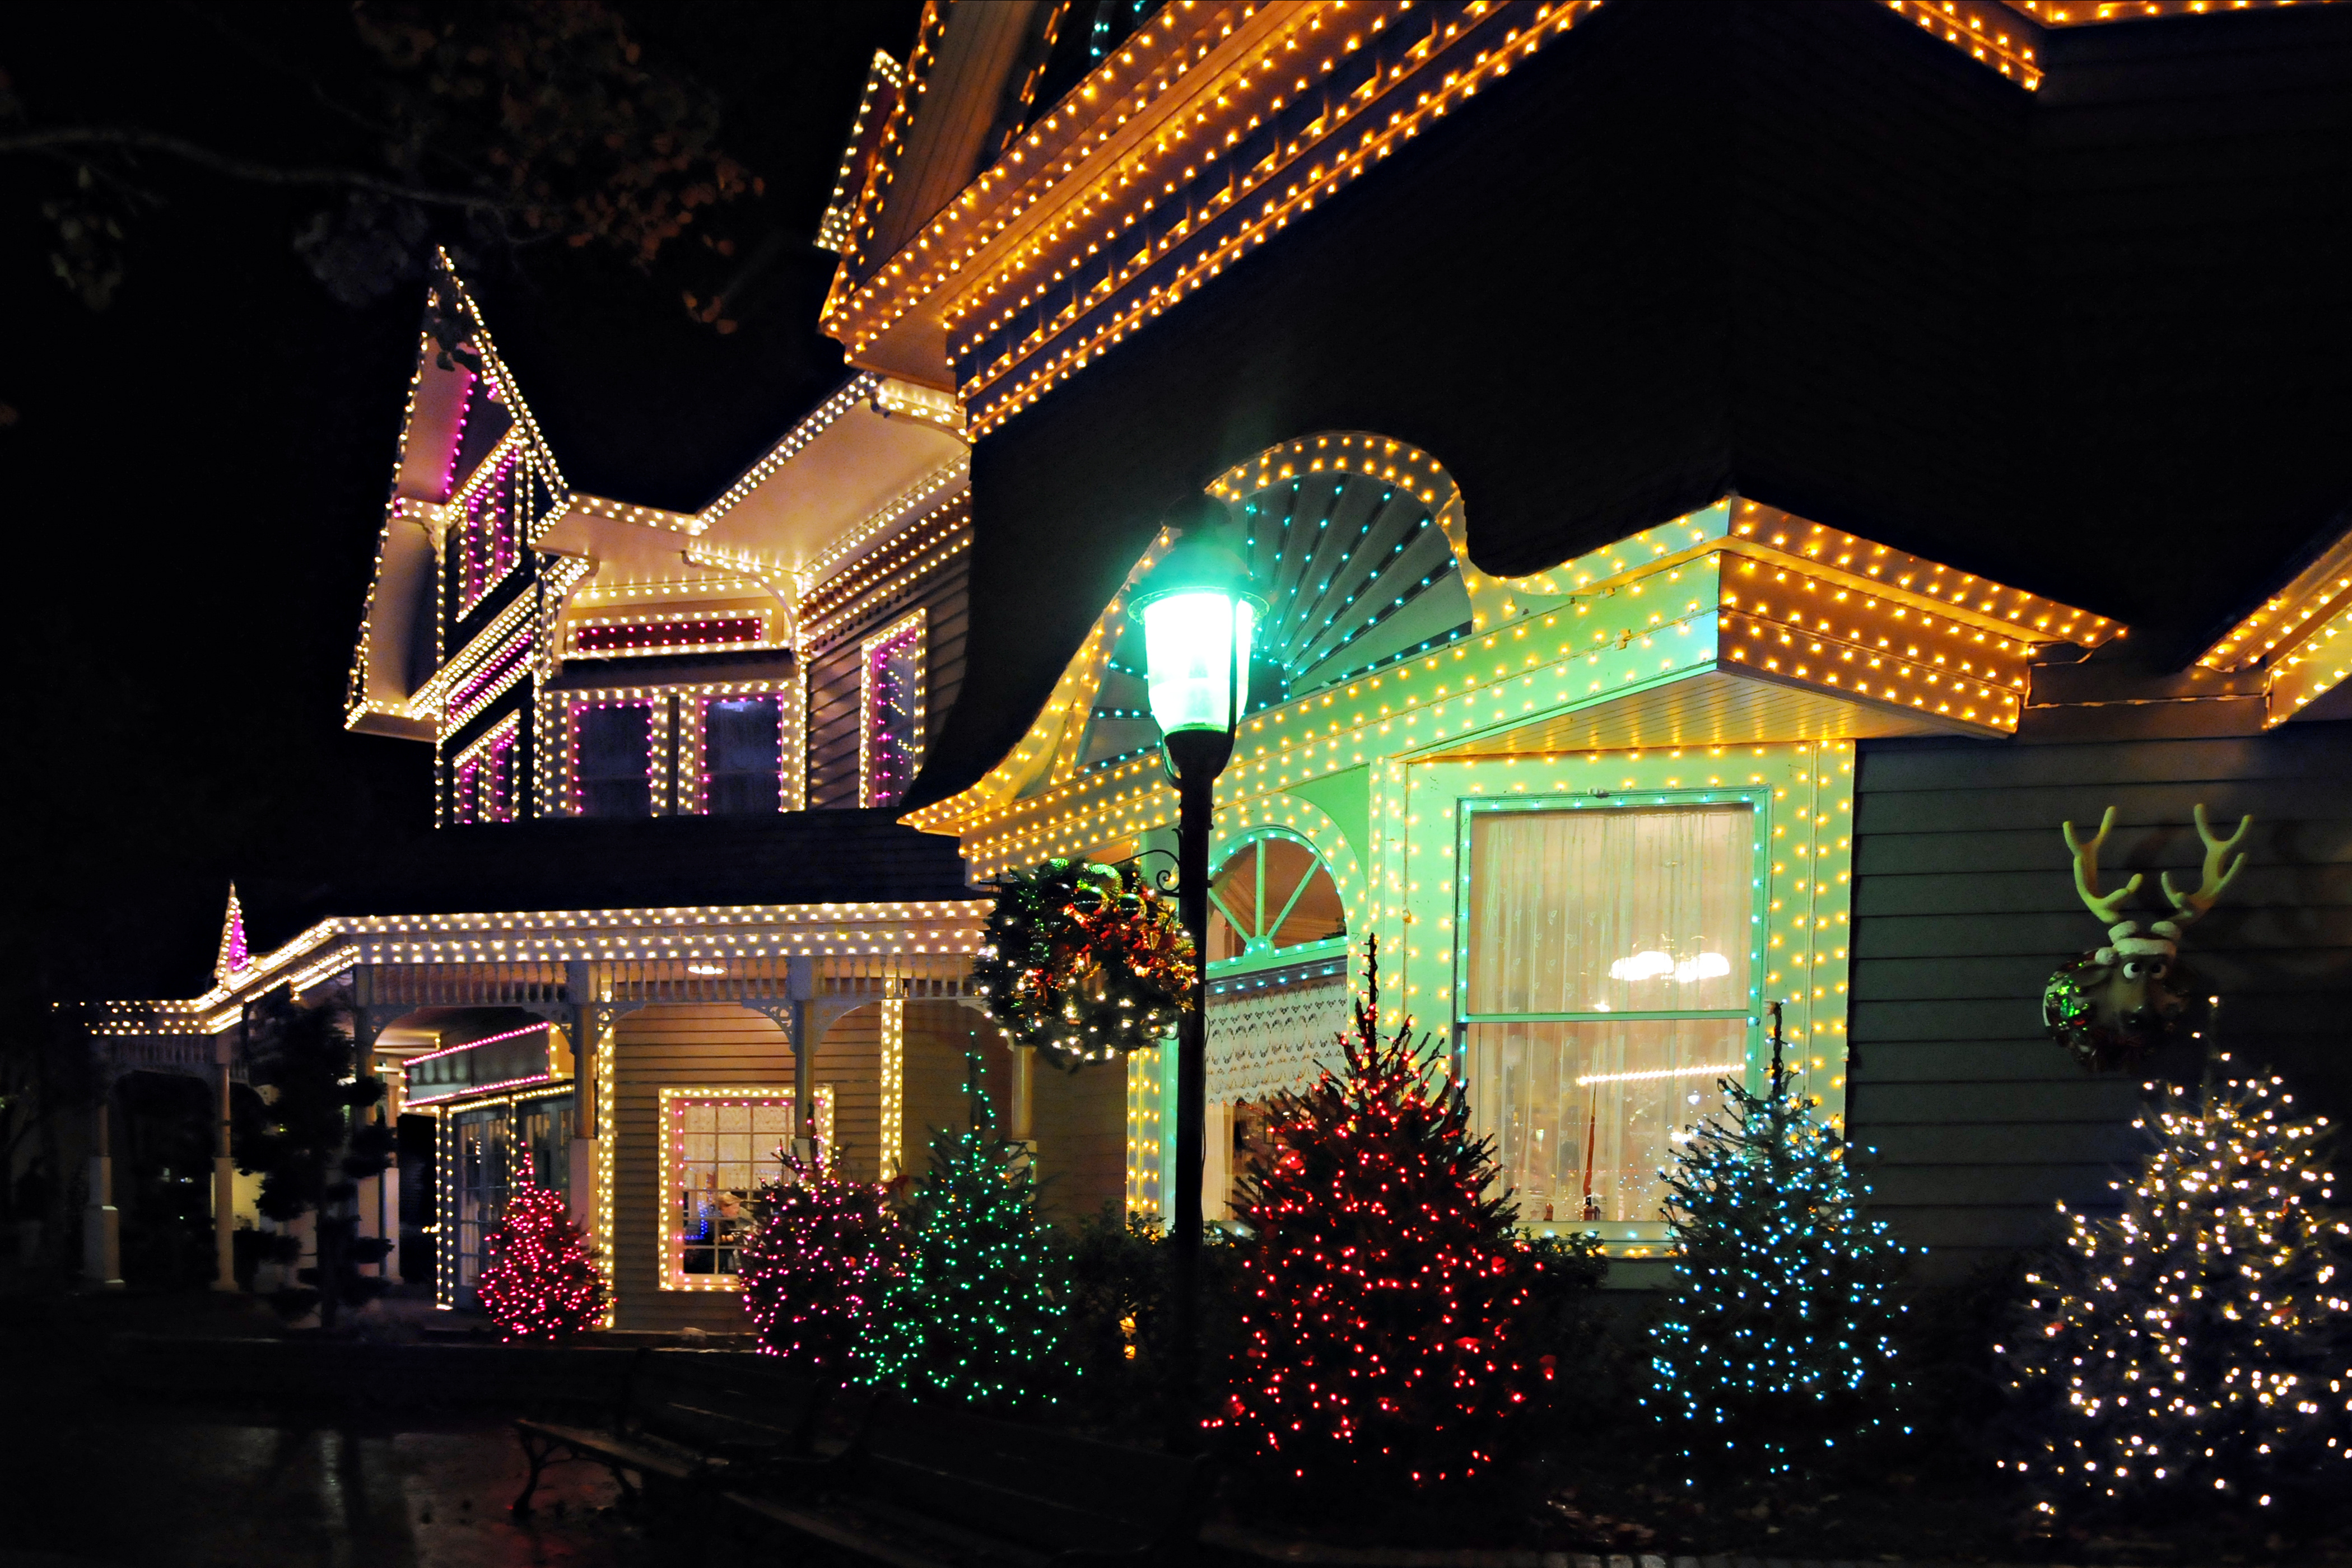 houses decorated with lights for Christmas